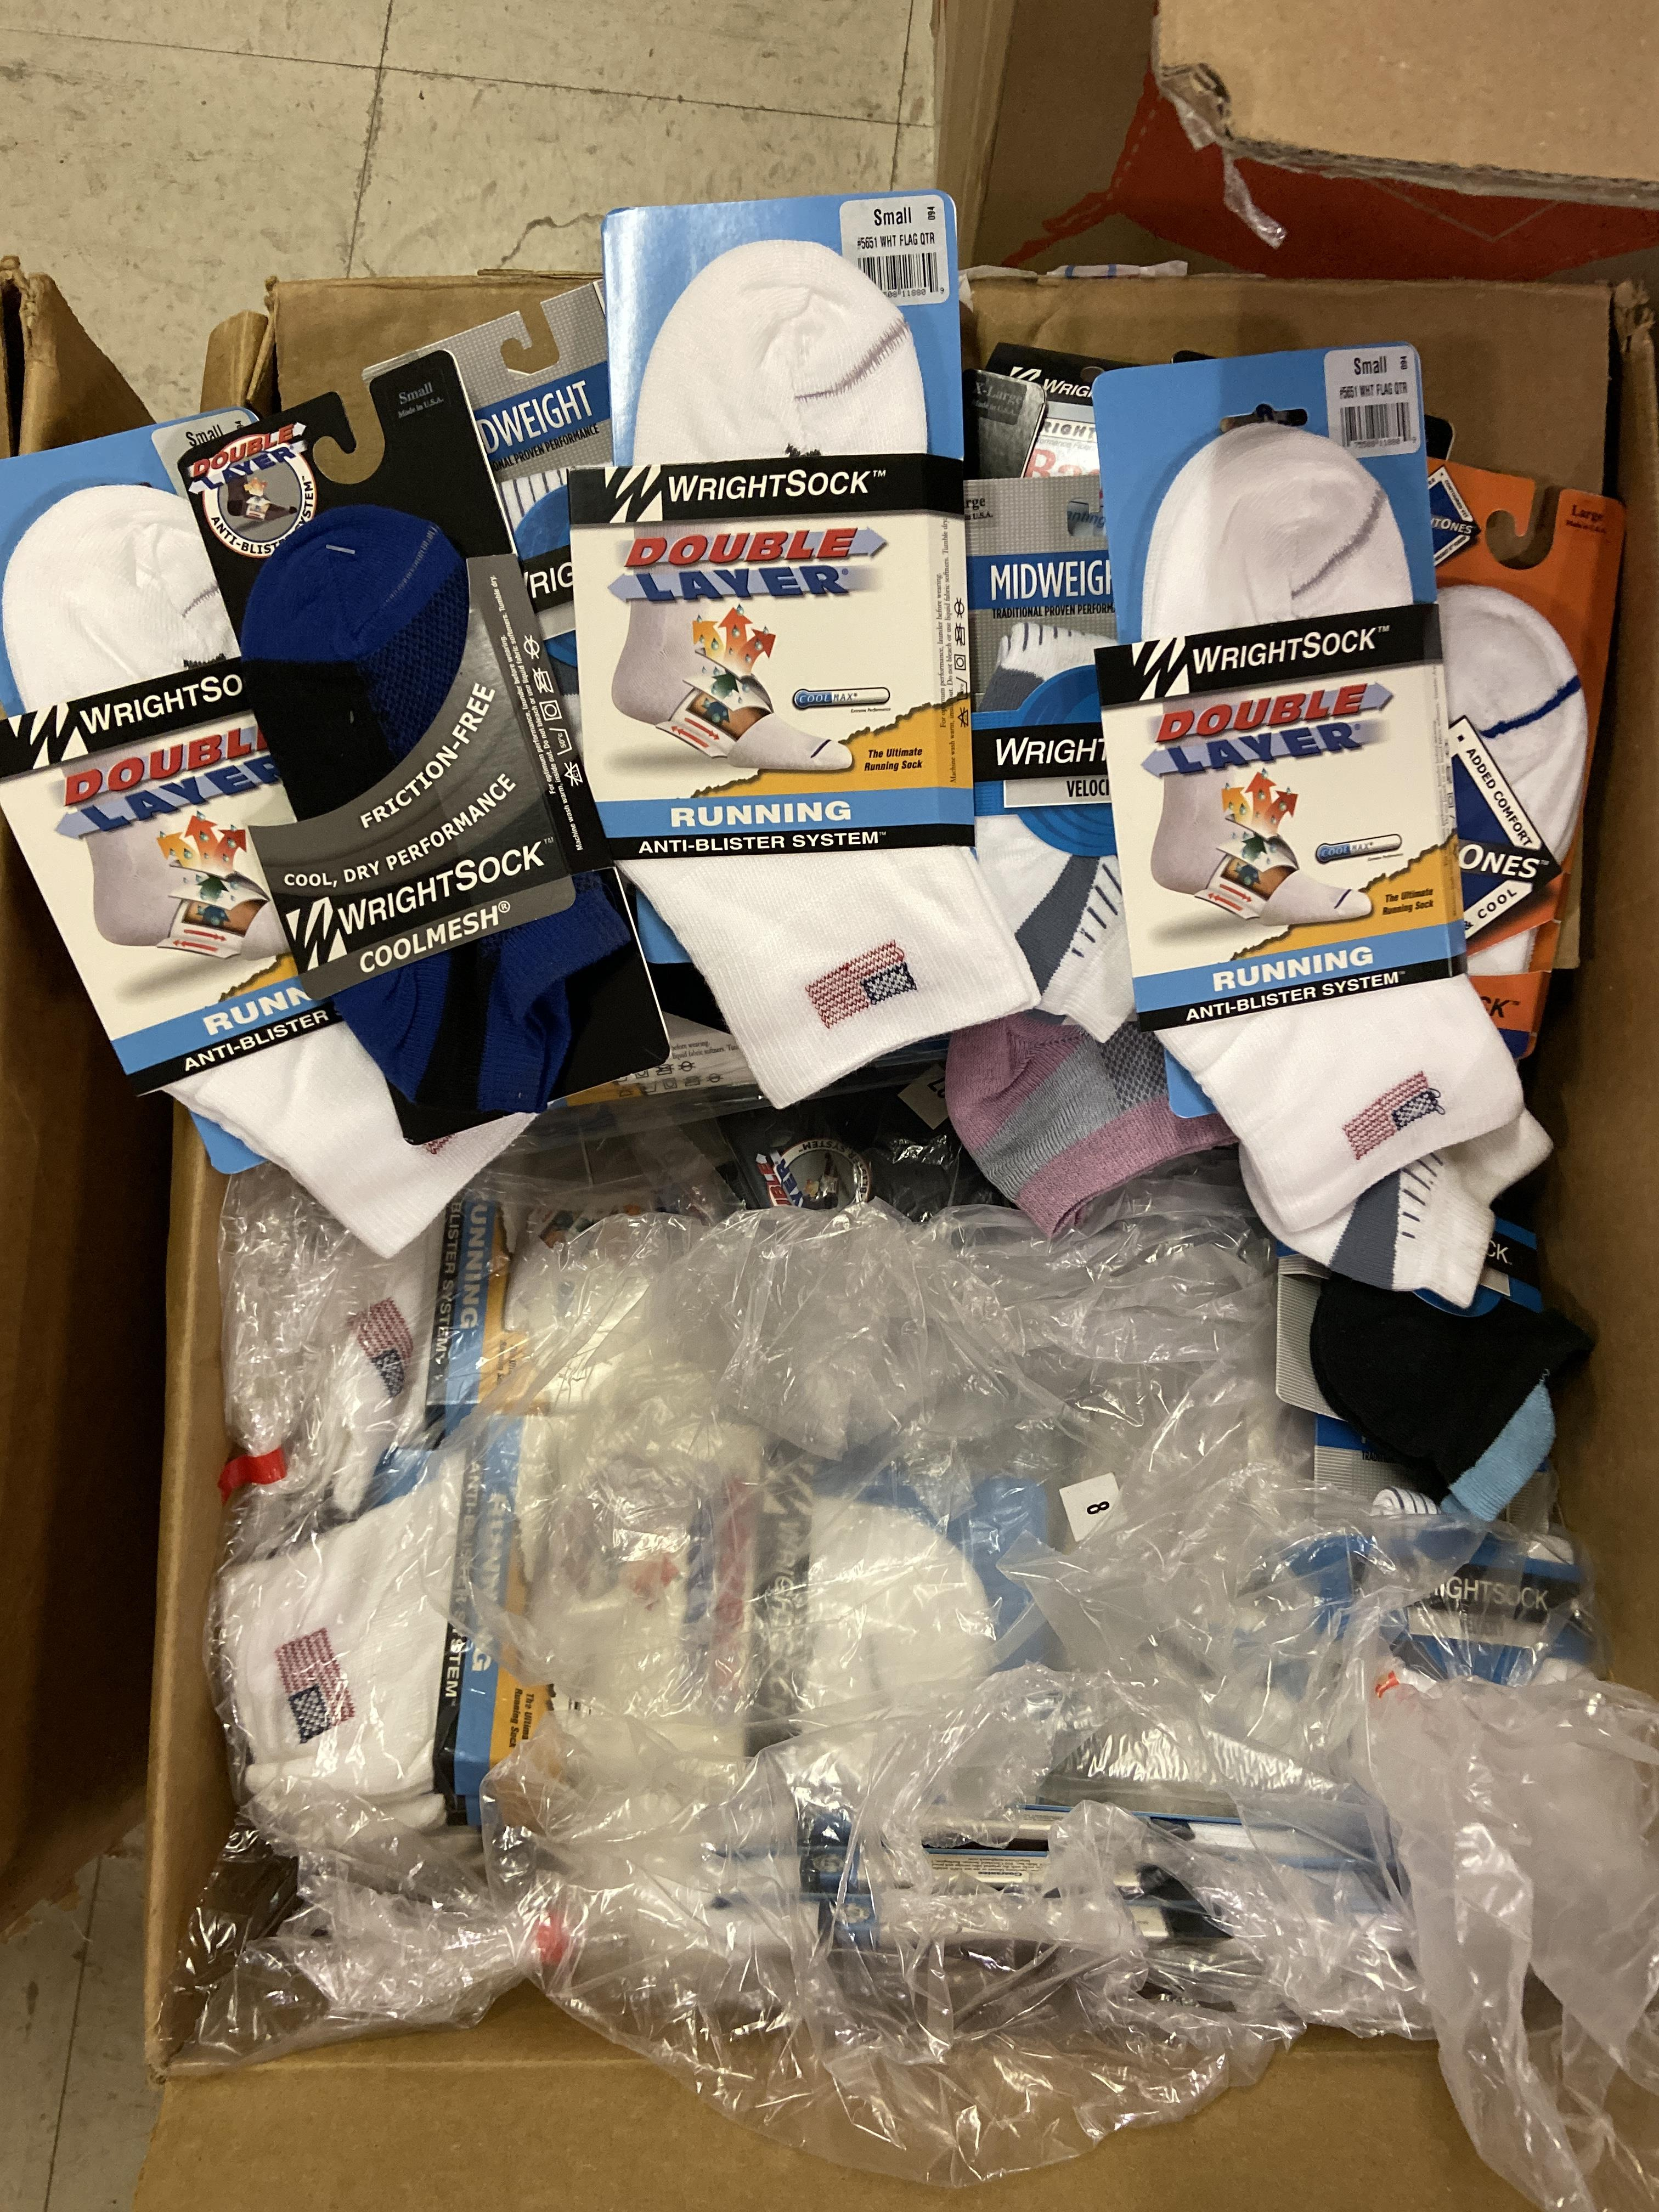 500+ packs of New Socks, Wrightsocks Various Styles, Various Colors - Image 2 of 5